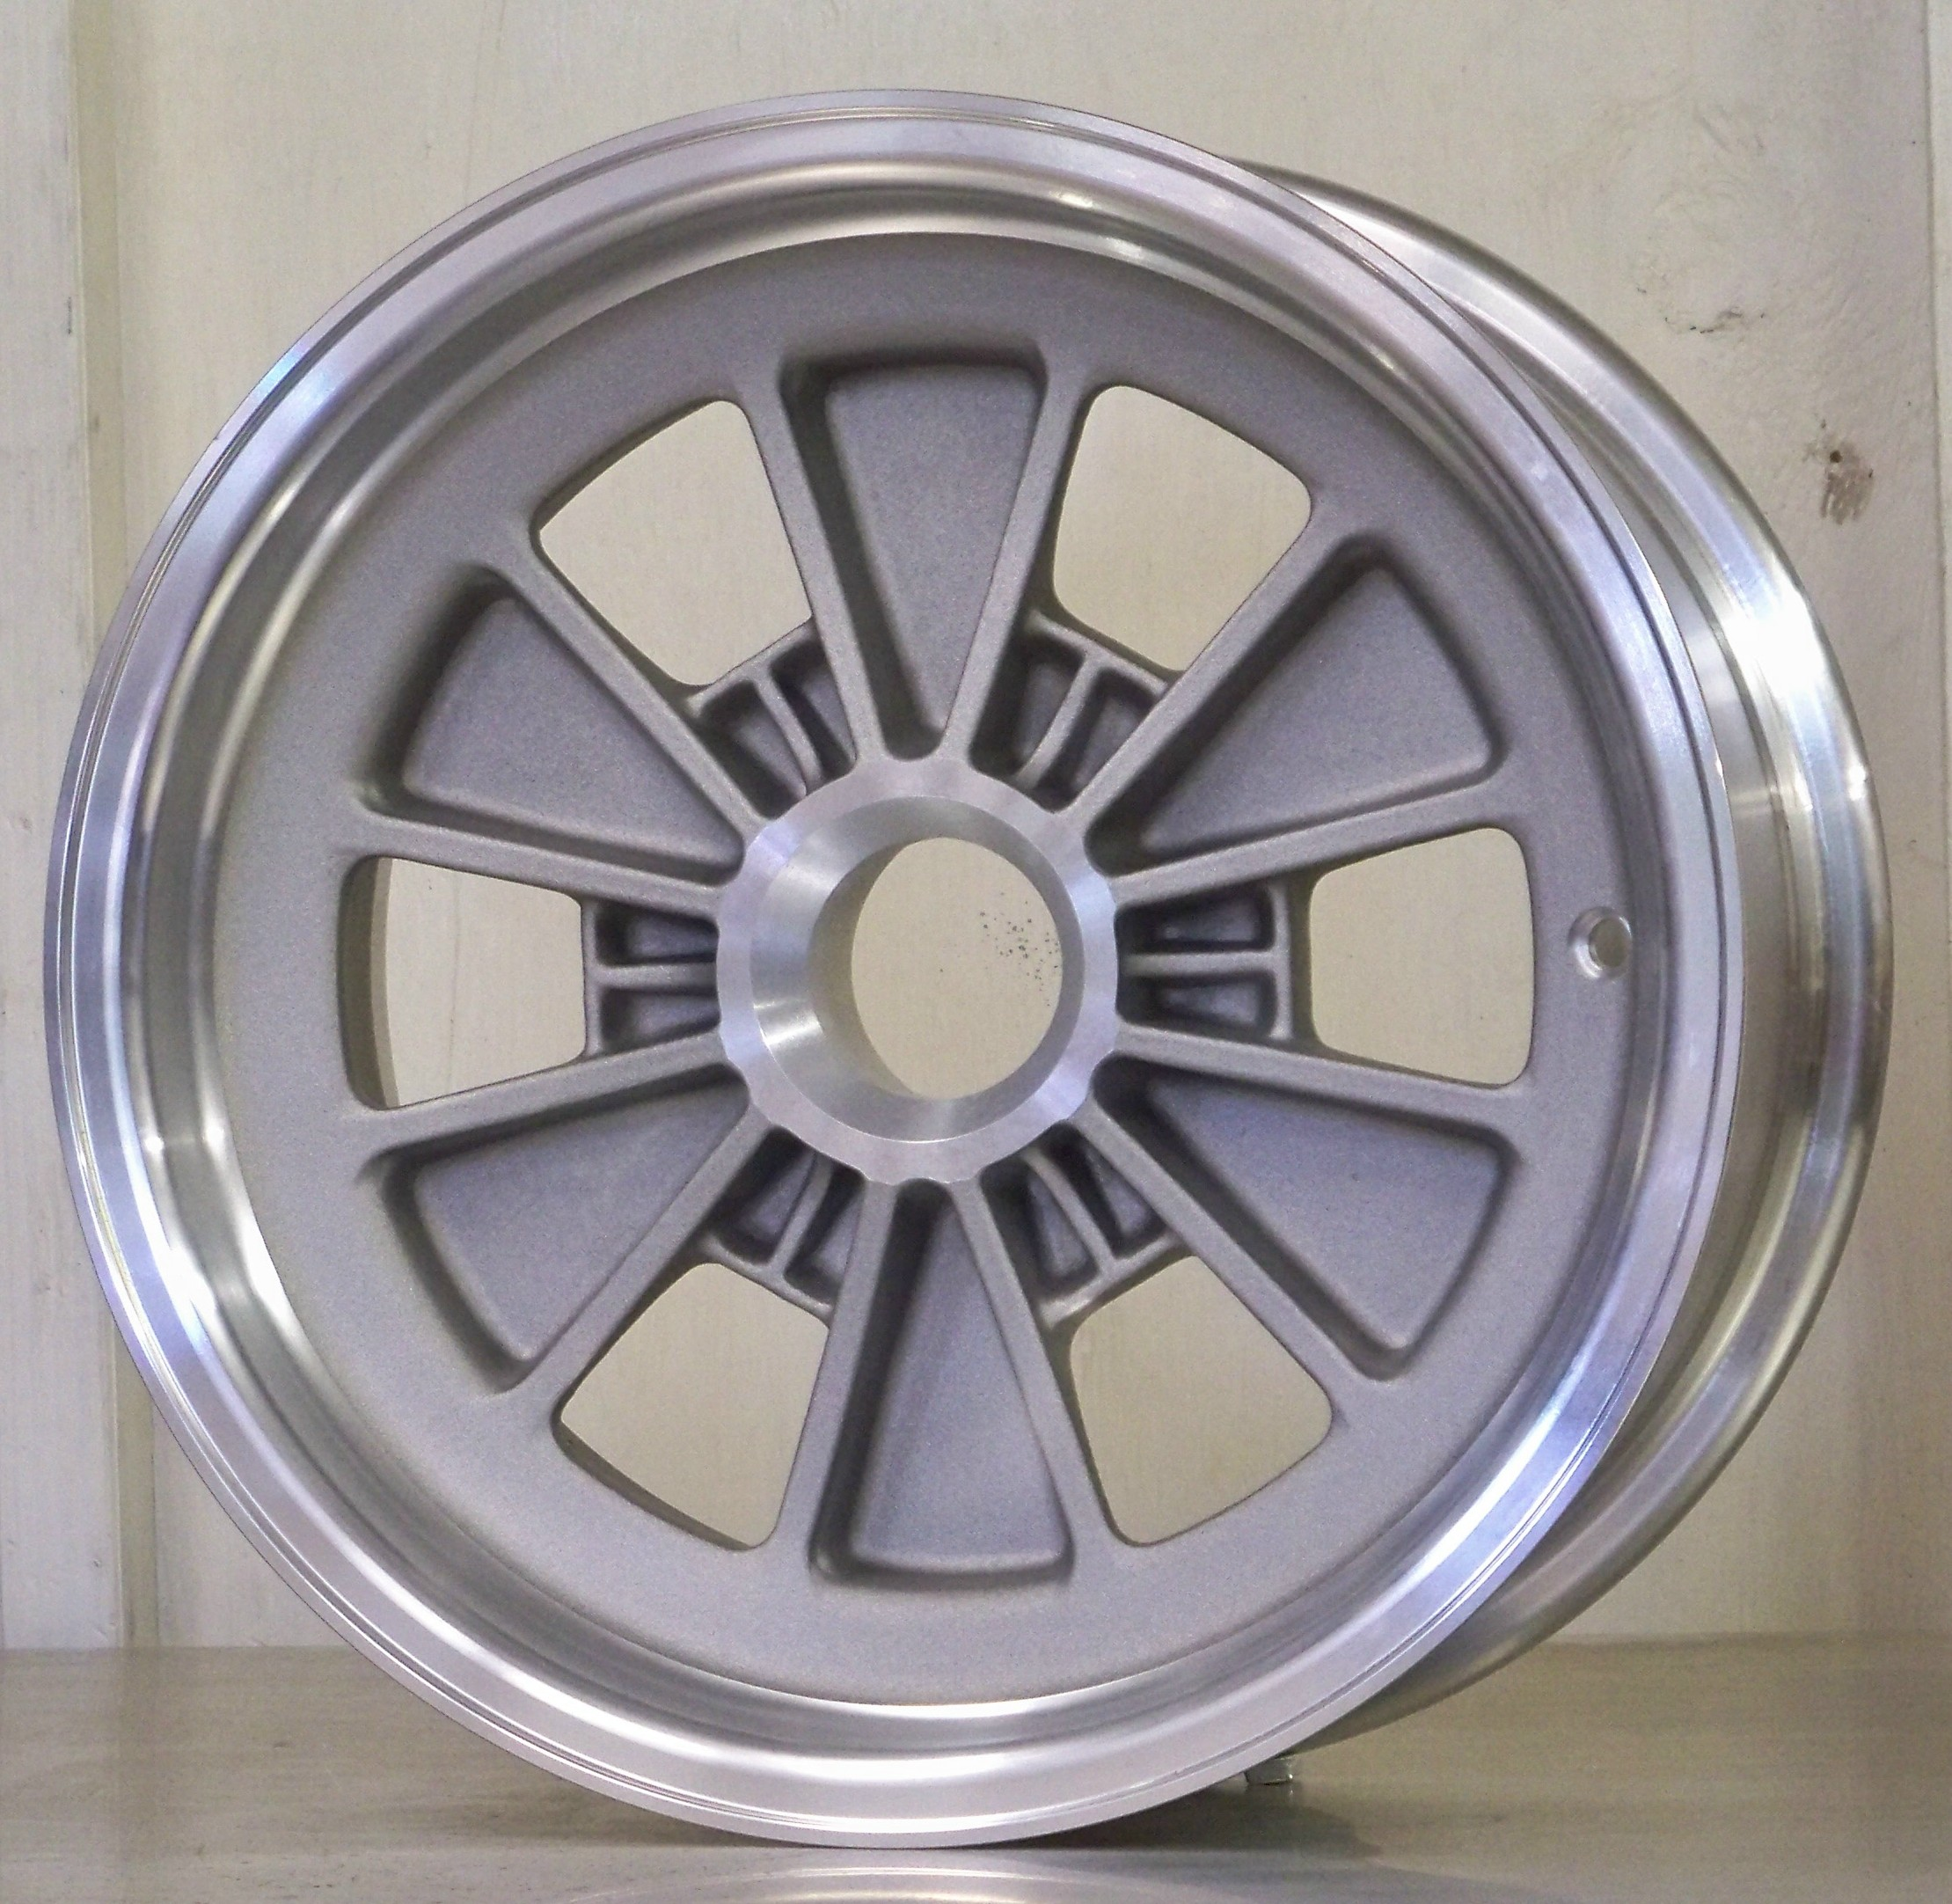 FIA 15 x 7.5 5 pin cast finish